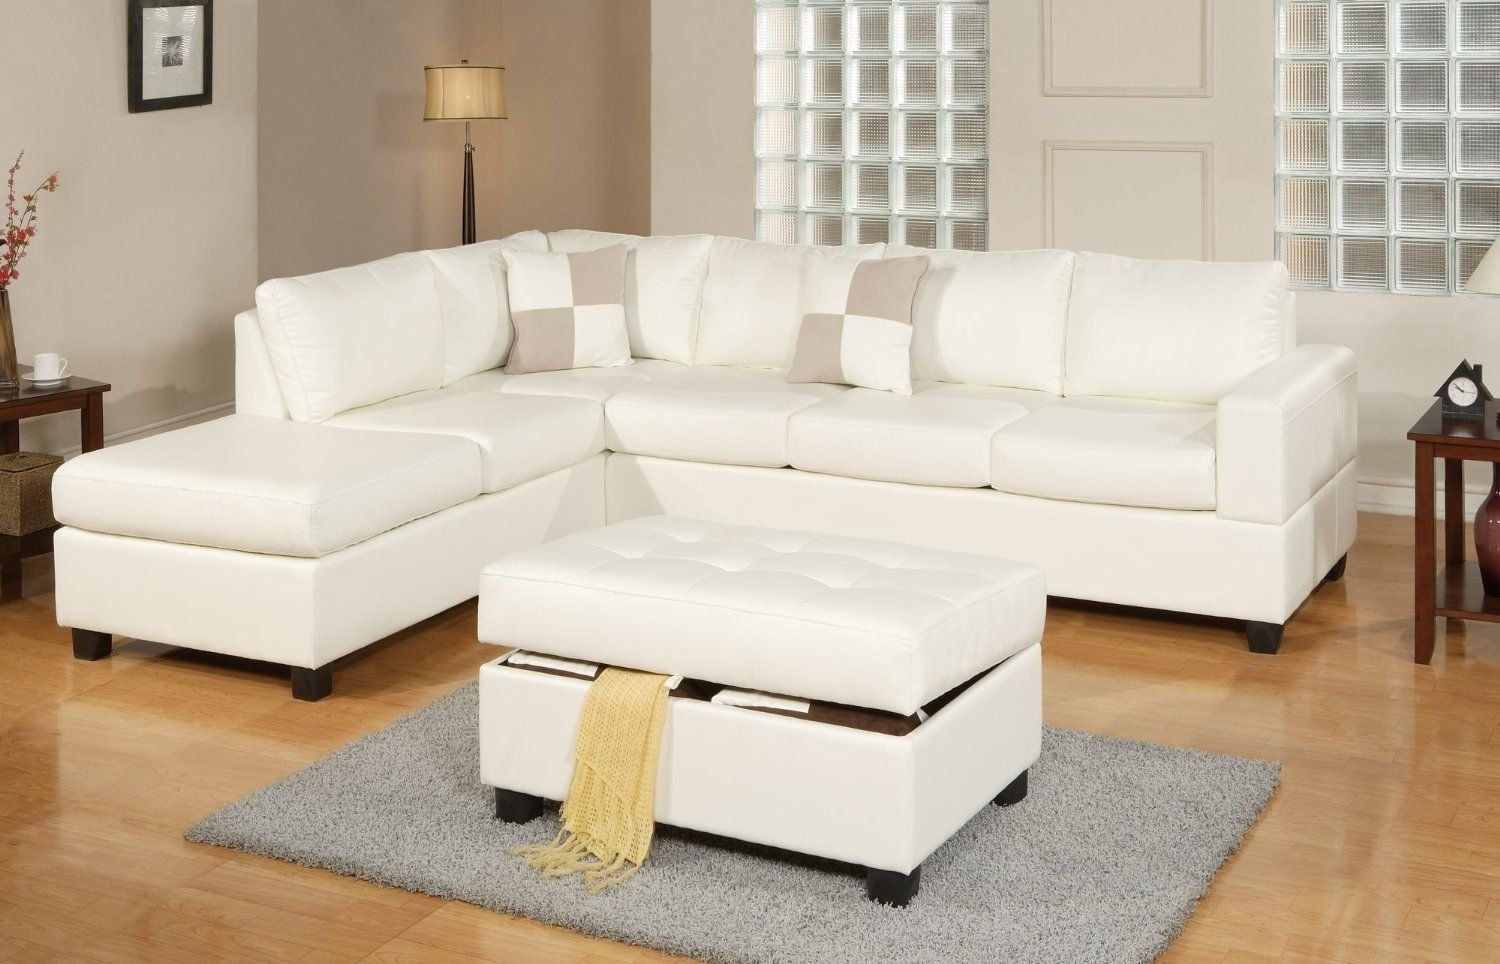 Bonded Leather White Modern Reversible Sectional Couch Sofa Chaise Ottoman